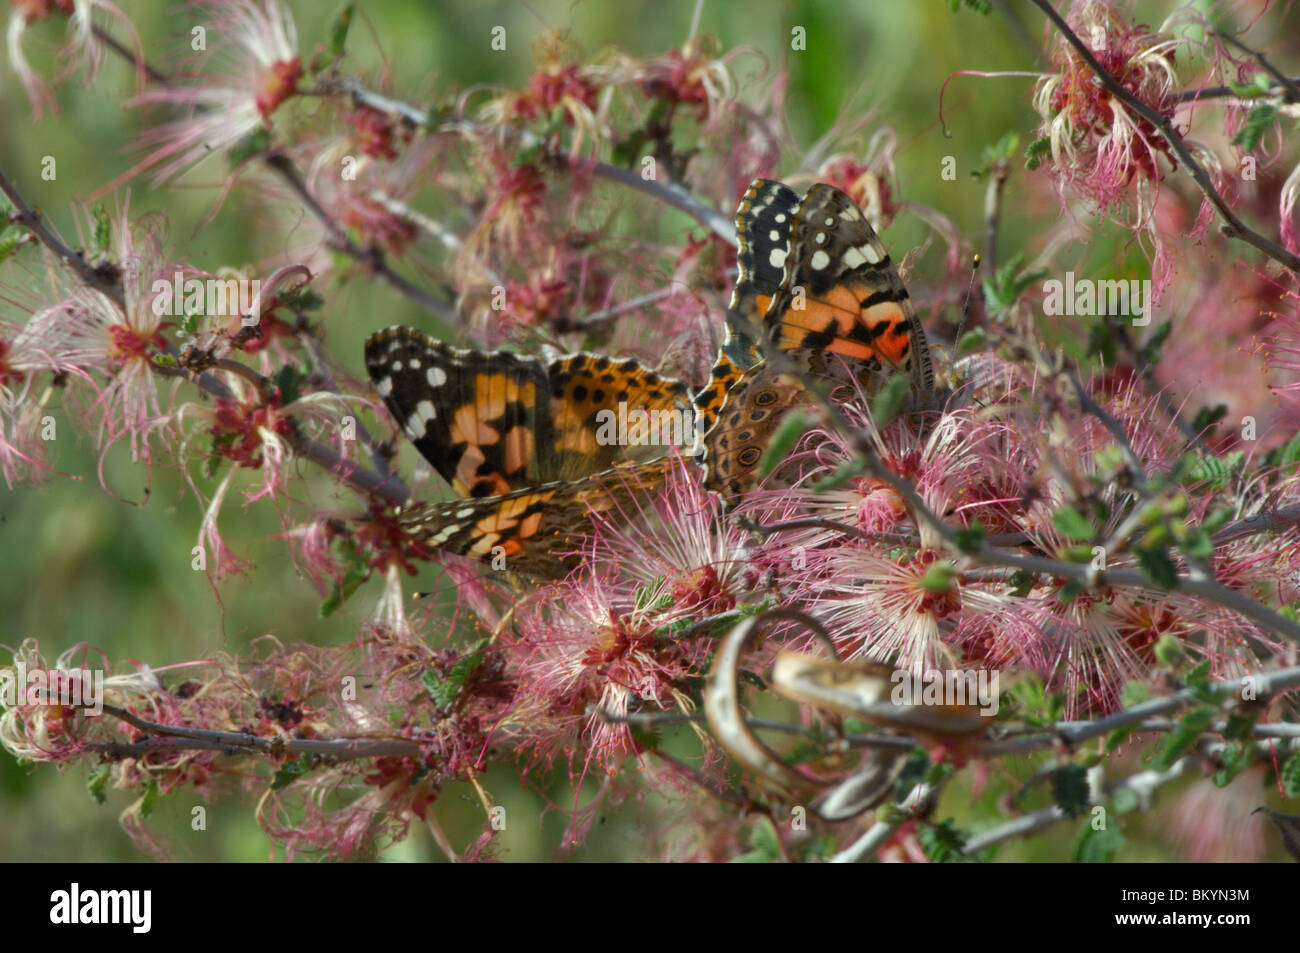 Painted lady butterfly (Vanessa cardui), feeding from wildflowers - Stock Image